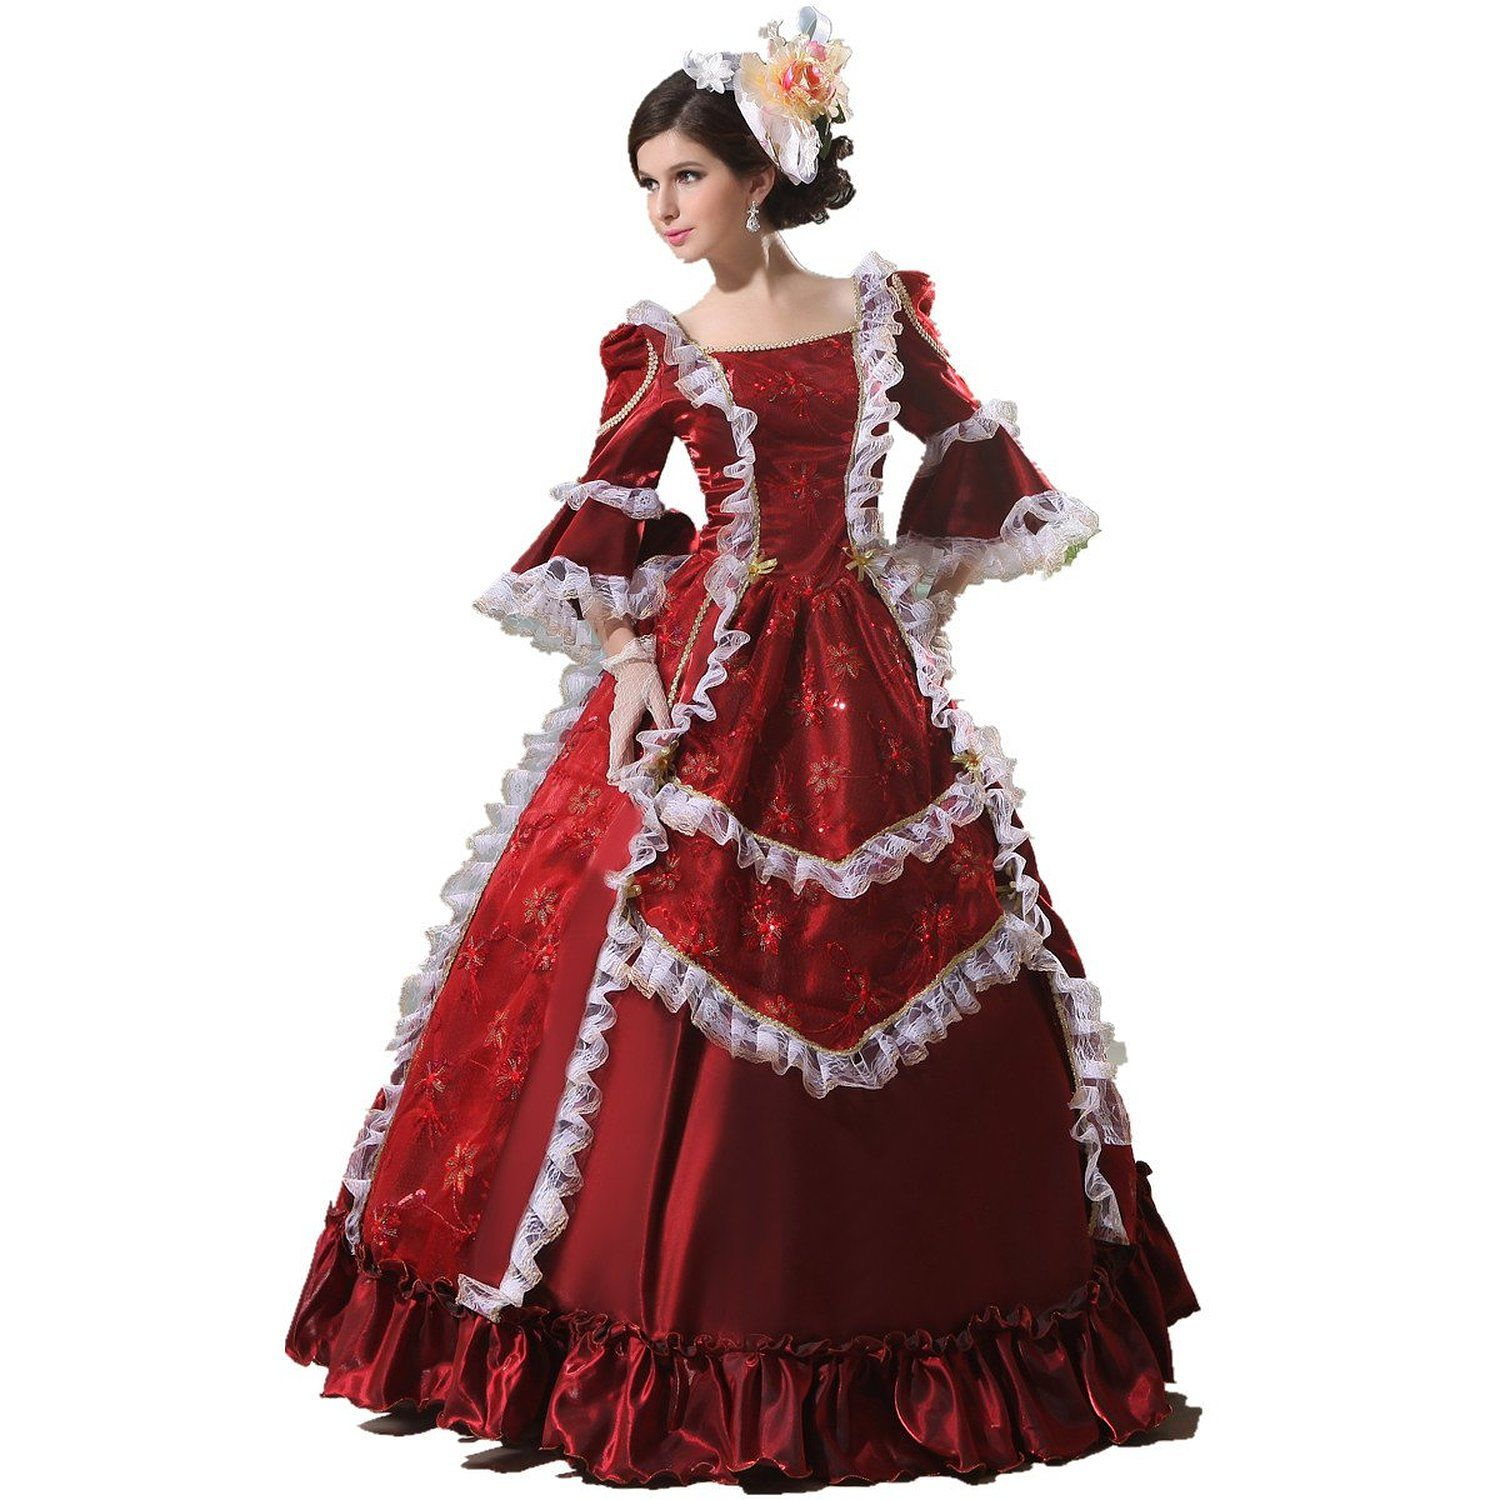 496c34d31601 Women's 17/18th Century Rococo Baroque Marie Royal Gown | Halloween ...